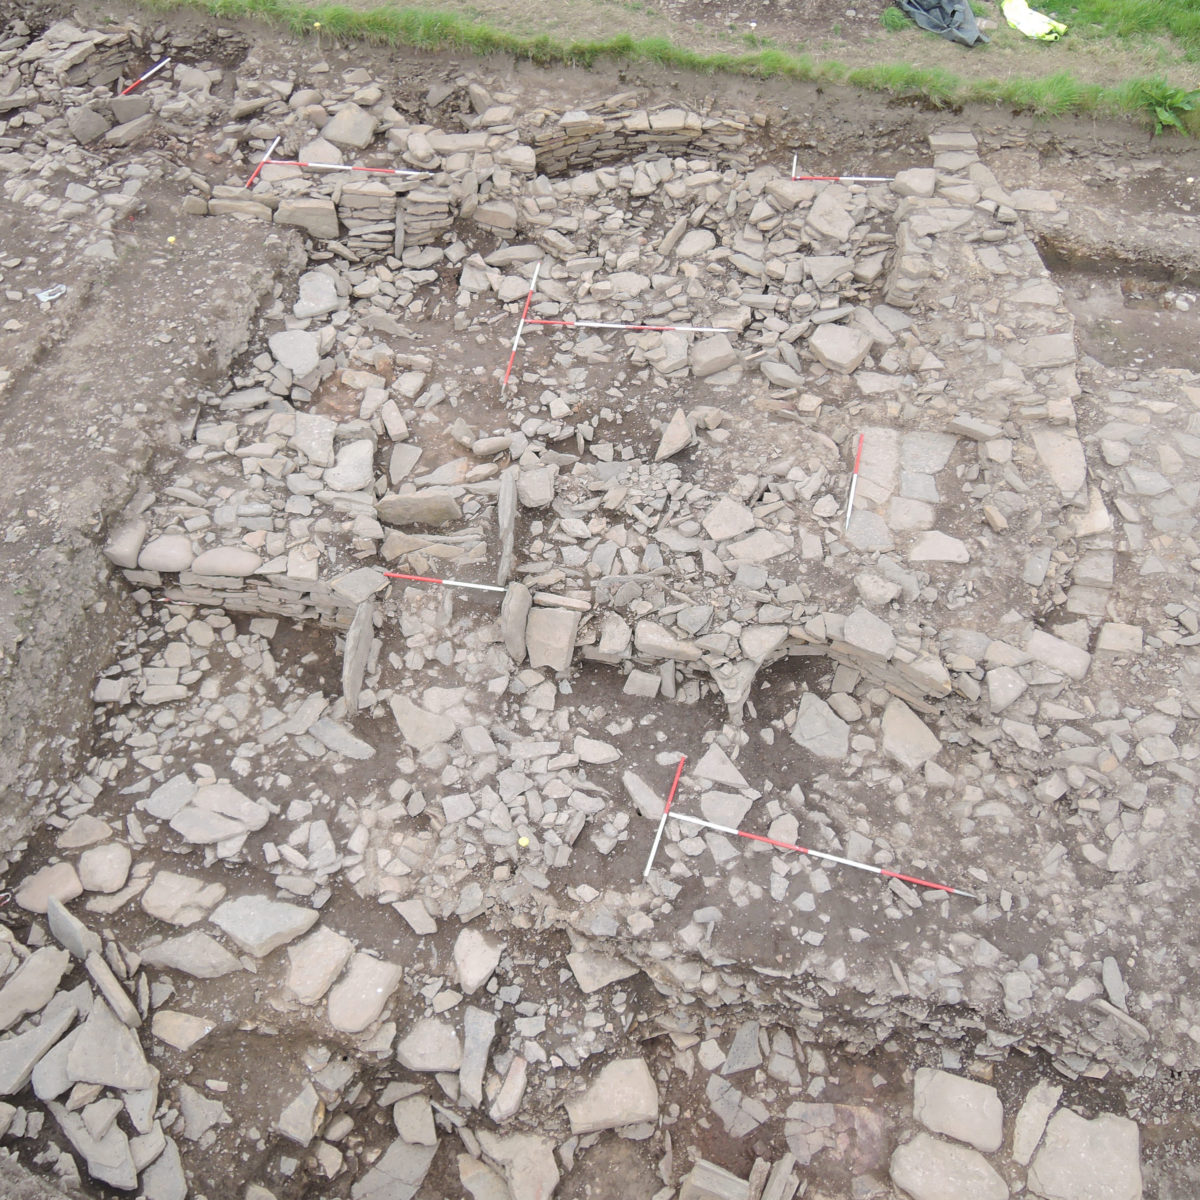 The remains of the structure where the jewellery-making occurred at the Cairns.